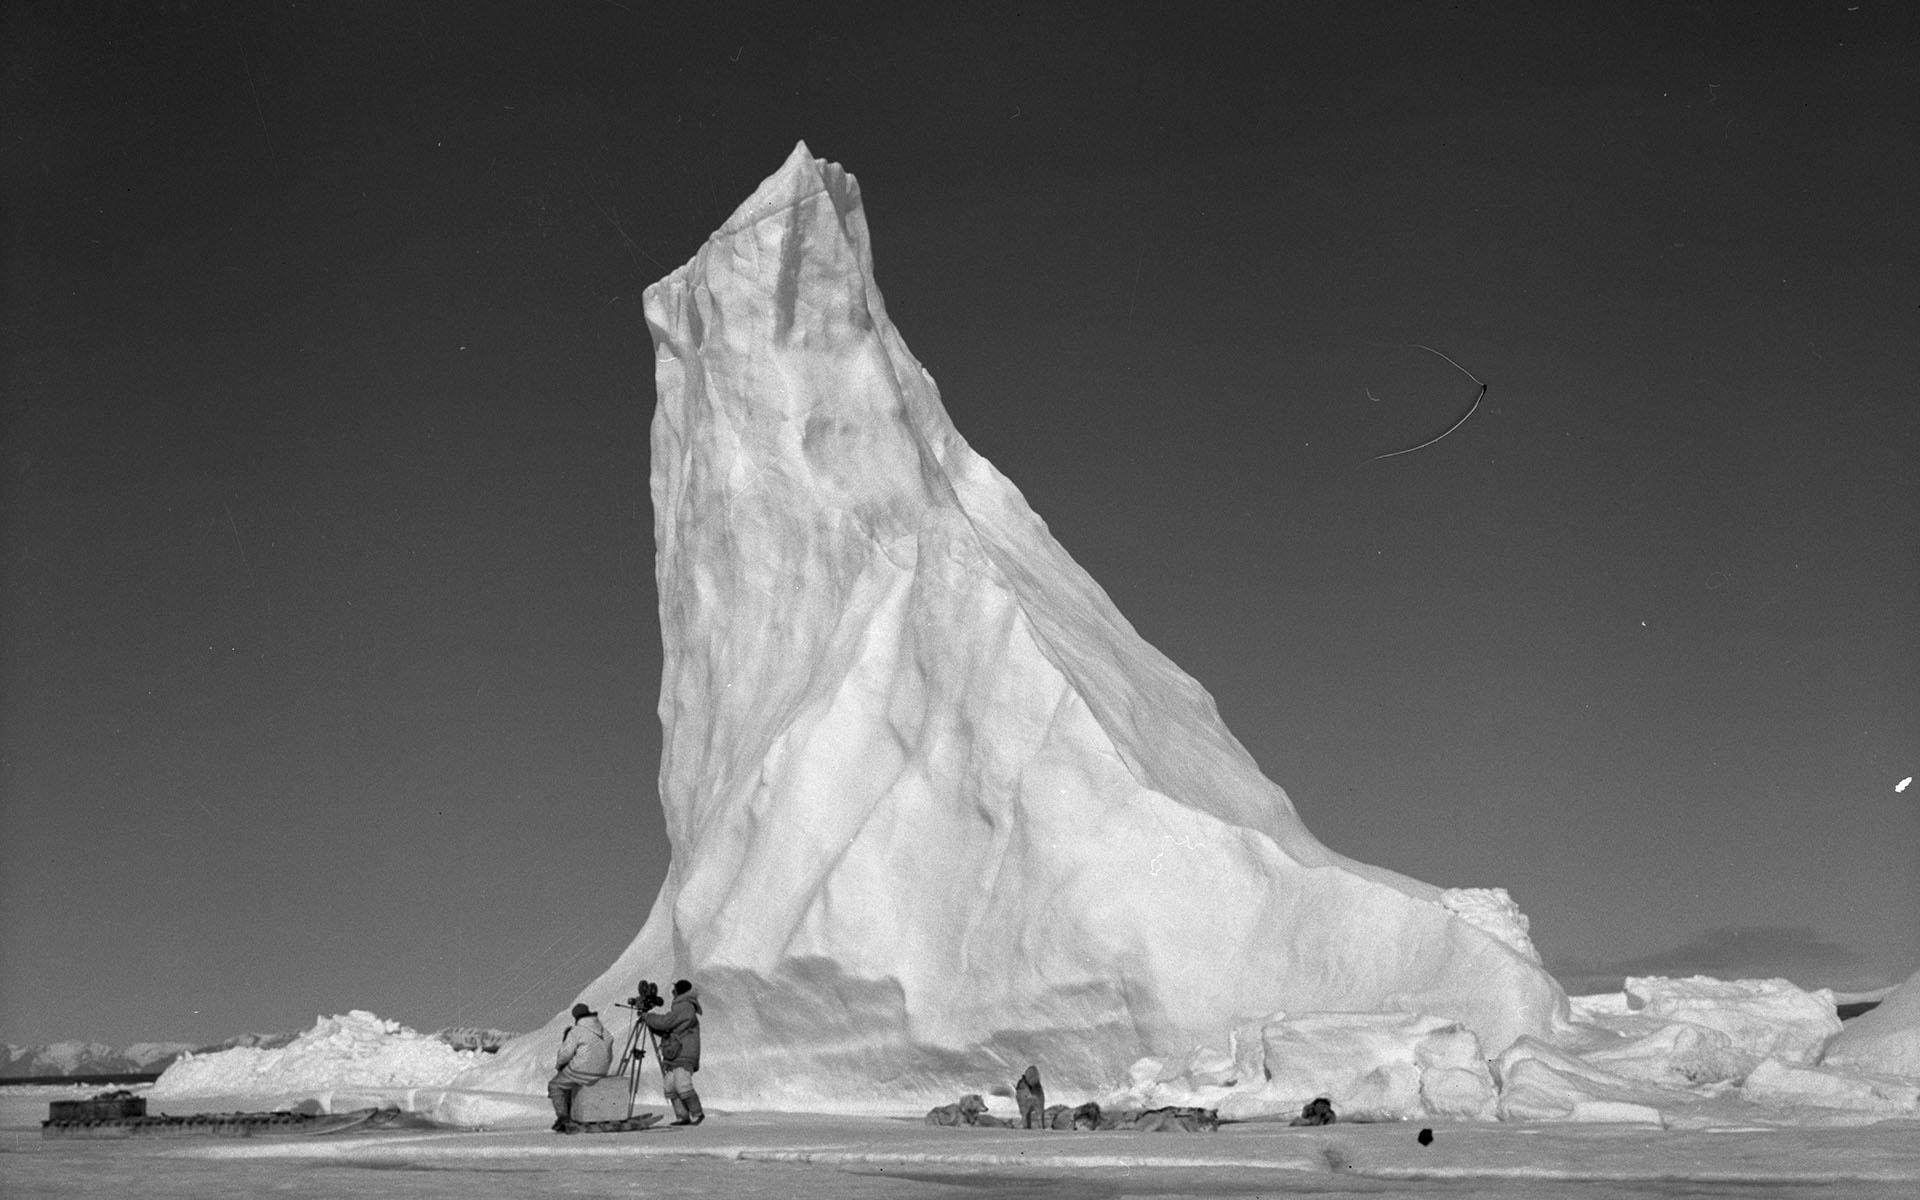 National Film Board crew setting up their camera near a towering arctic iceberg